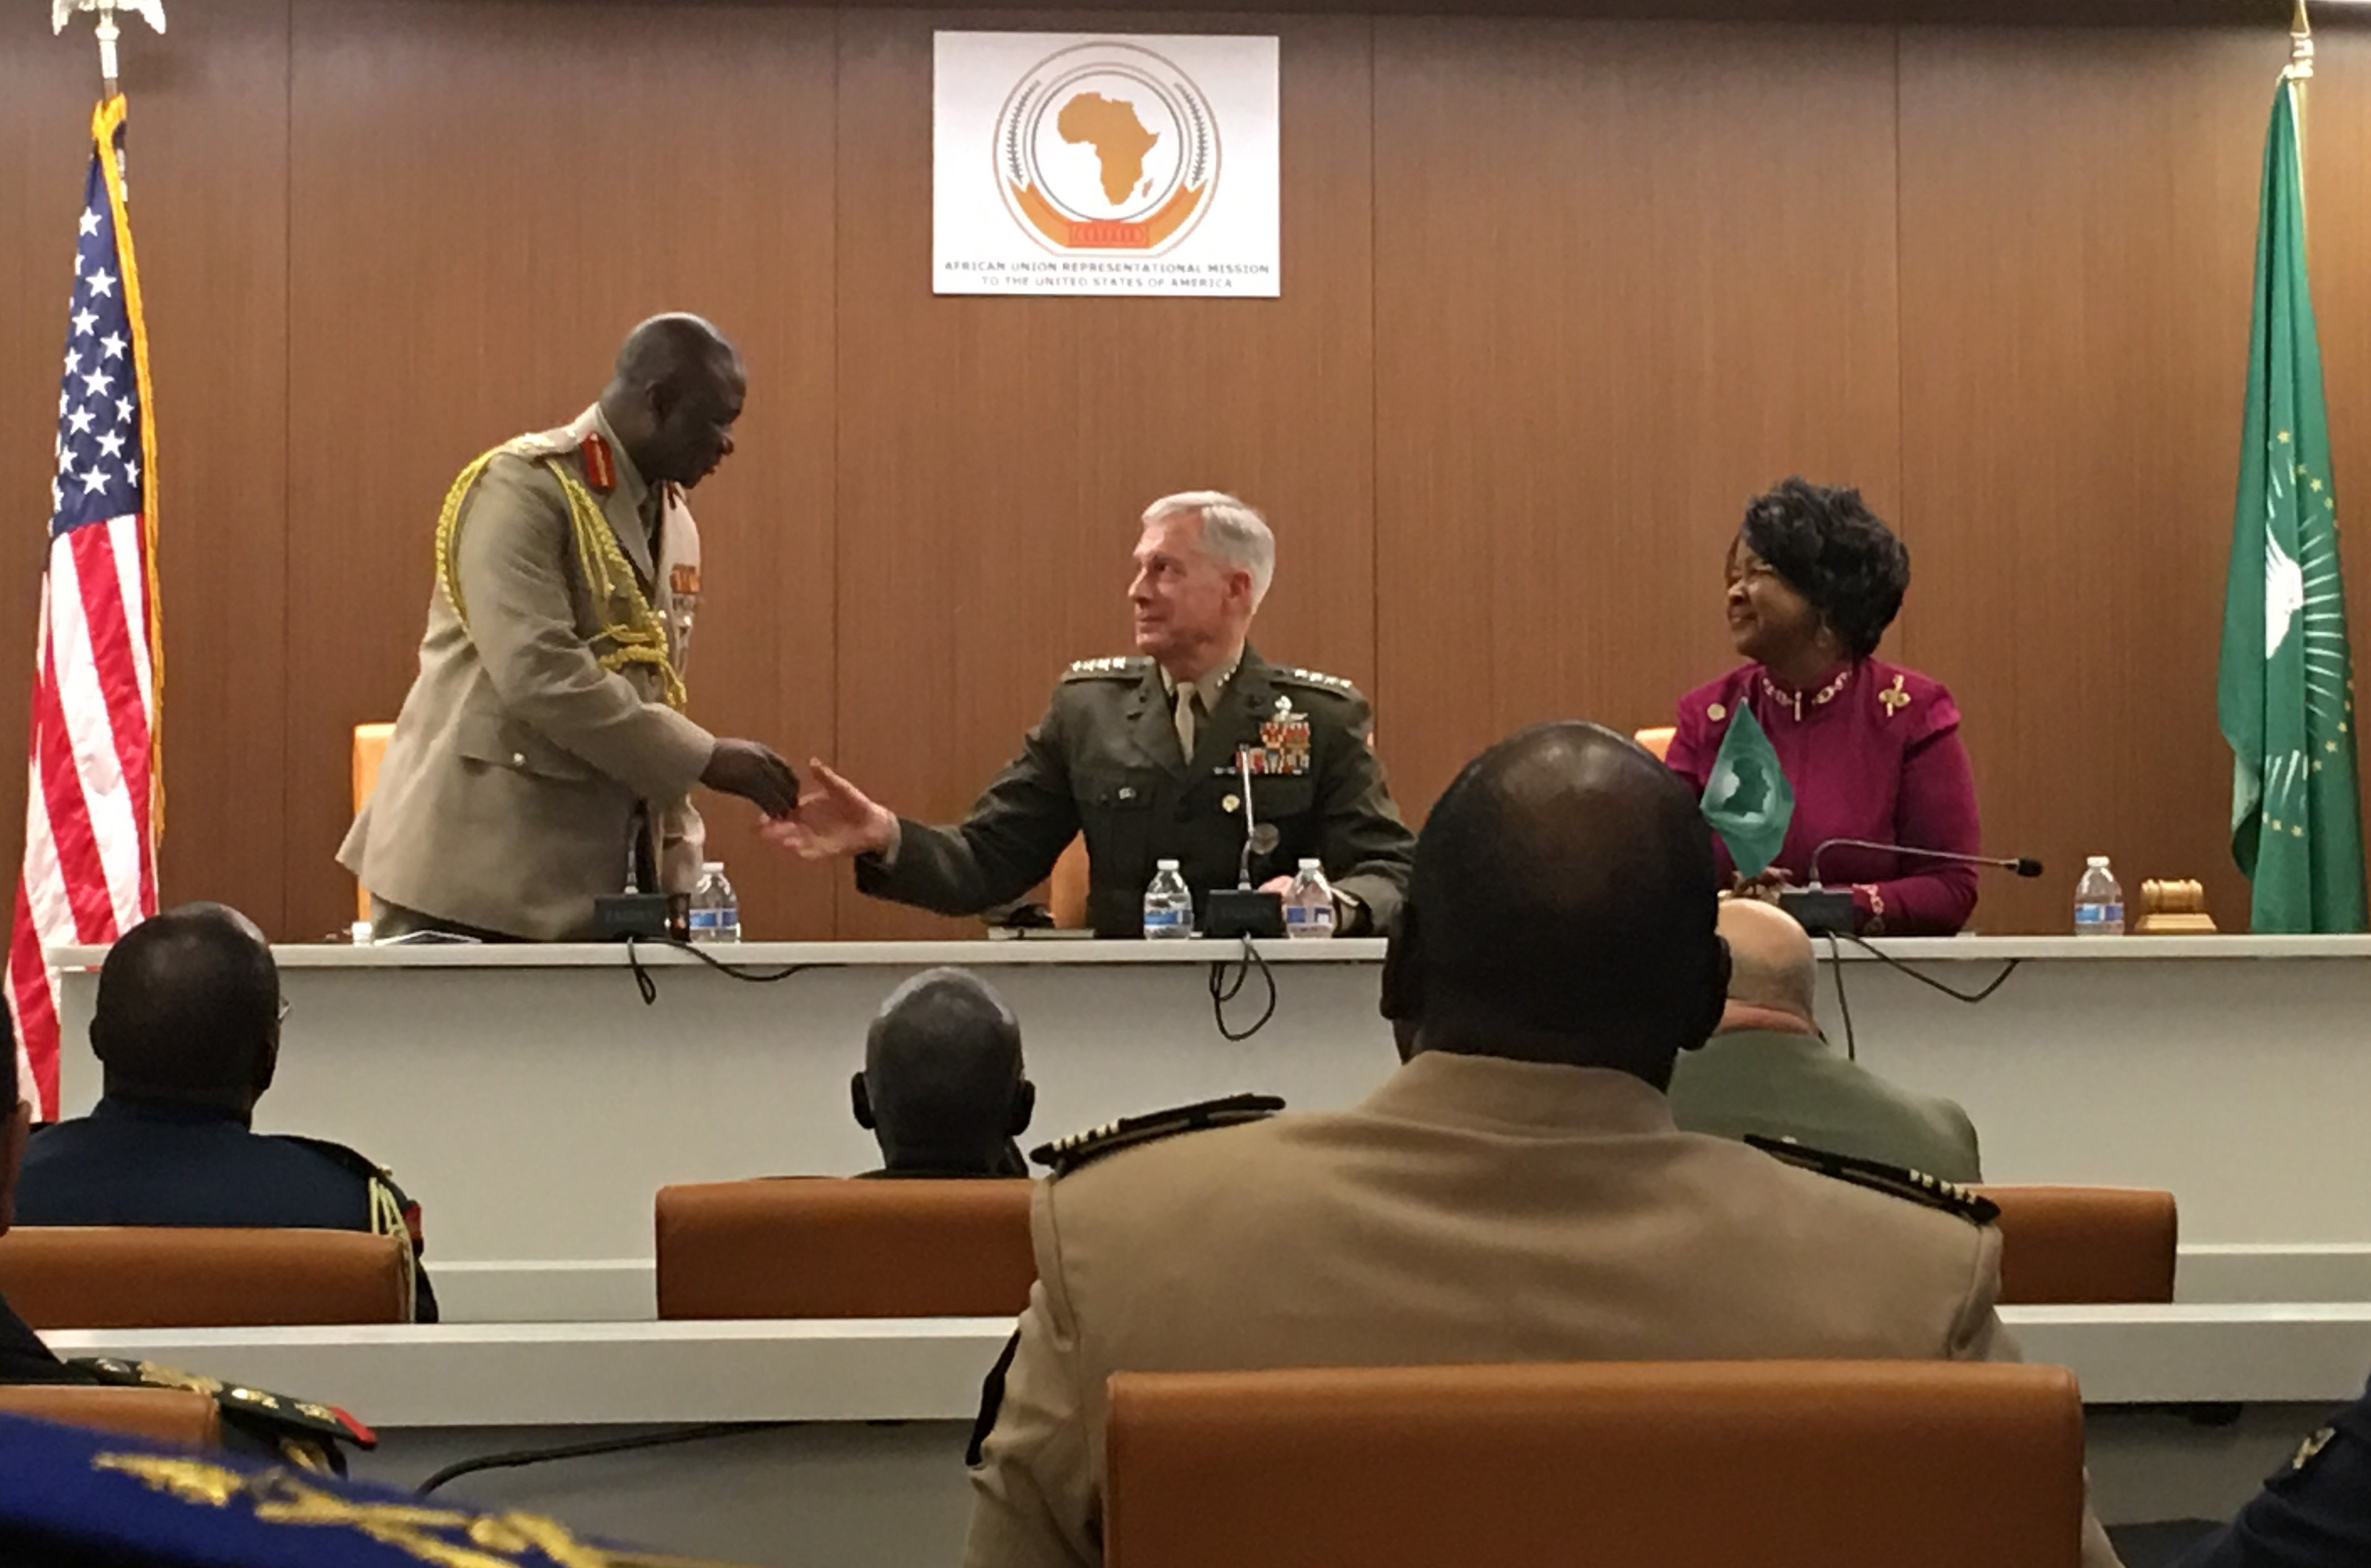 Marine Corps Gen. Thomas D. Waldhauser reaches out to shake the hand of Brig. Gen. Alhassan Abu, Military Navy Air Attaché, Ghana and Dean, African Defense Attaché Association, as the African Union Ambassador to the United States, Her Excellence Dr. Arikana Chihombori-Quao, looks on.  Waldhauser engaged with 21 defense attaches and the African Union Ambassador to the United States, in a wide-ranging discussion at the Africa House, in Washington D.C. Waldhauser stressed the importance of the U.S. relationship with African and efforts to build African partner capacity to address challenges on the continent.